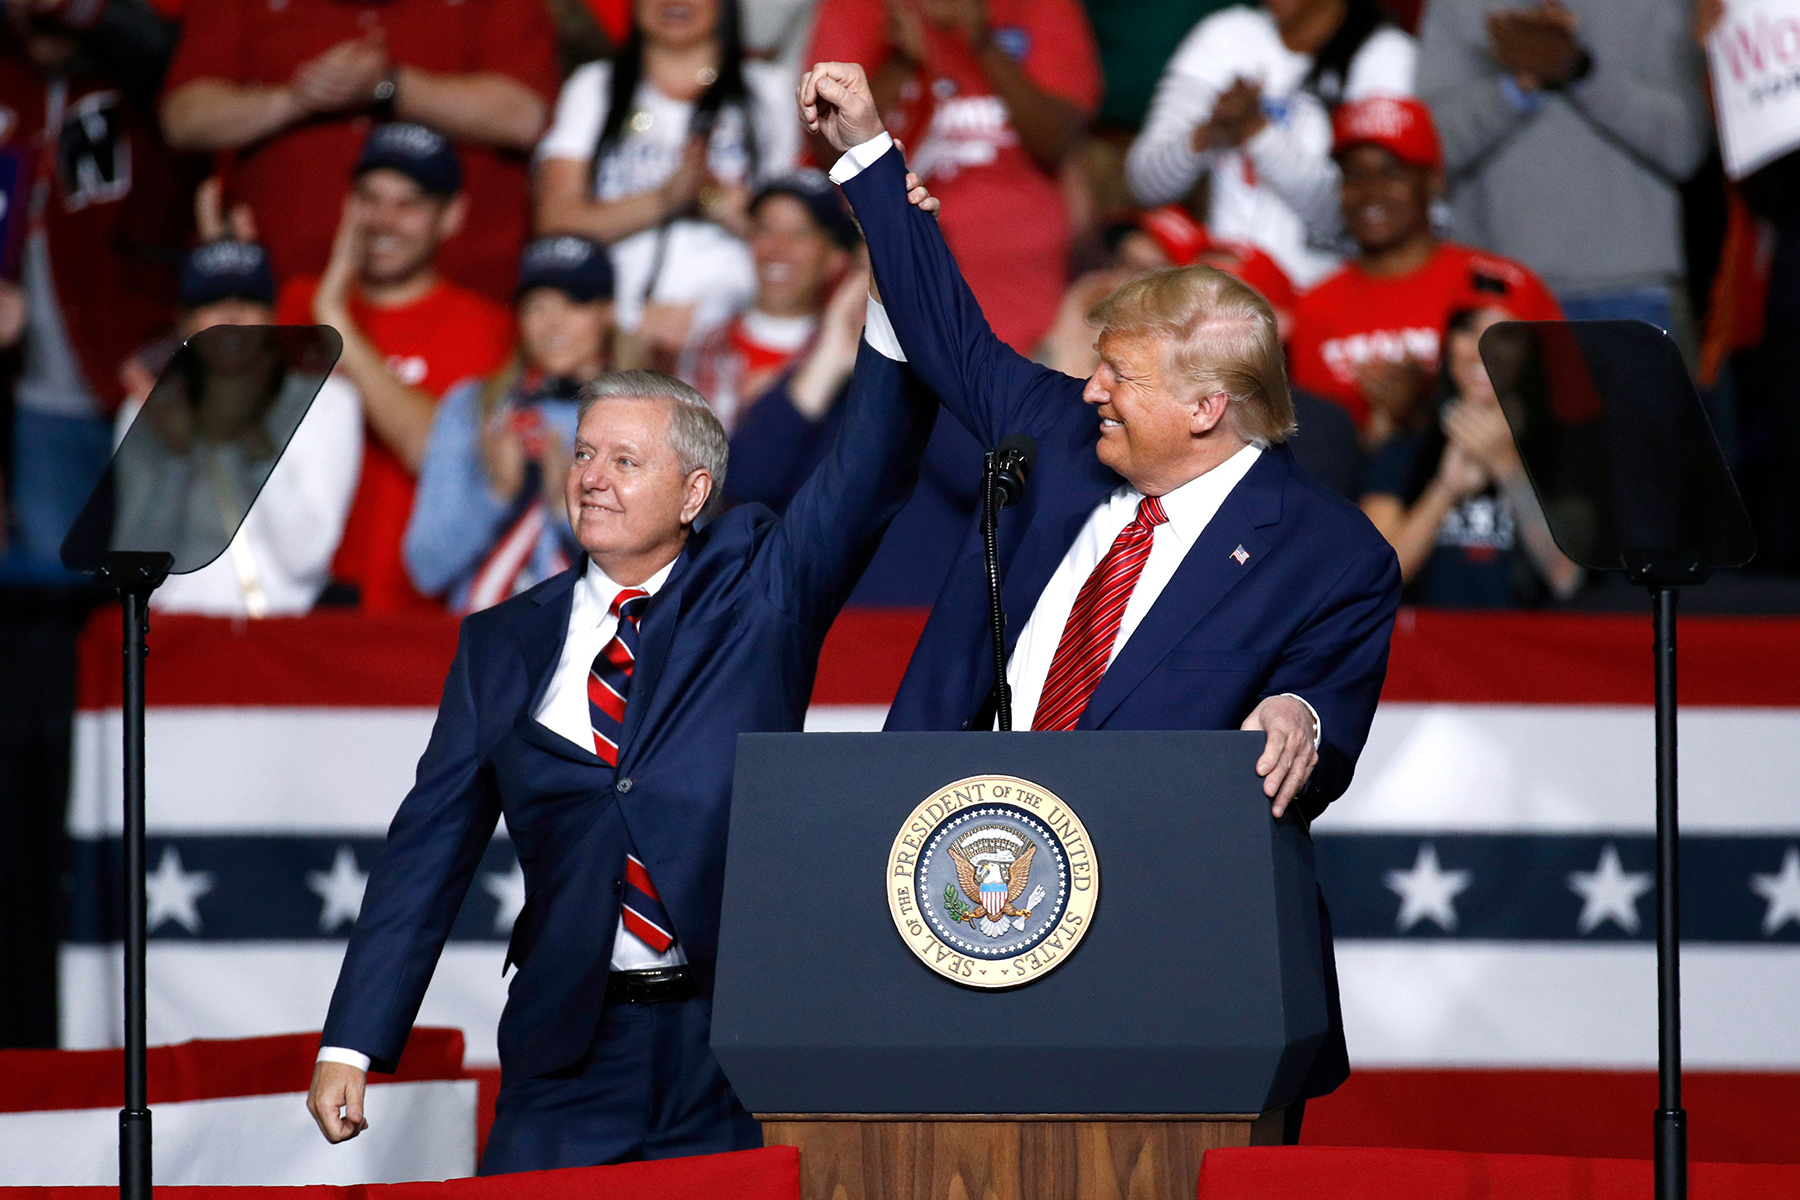 Sen. Lindsey Graham, R-S.C., left, stands onstage with President Donald Trump during a campaign rally, in North Charleston, S.C. The filing period for South Carolina's 2020 primaries and November general election closed Monday, March 30 although the coronavirus outbreak has left in flux how exactly the elections will be carried out. Perhaps the most highly anticipated election contest coming up in South Carolina is Graham's pursuit of a fourth term in office. A general election matchup with Democrat Jaime Harrison all but certain, Graham has also drawn a handful of Republican challengers, as well as Constitution and Libertarian party opponentsCandidate Filing-South Carolina, North Charleston, United States - 28 Feb 2020